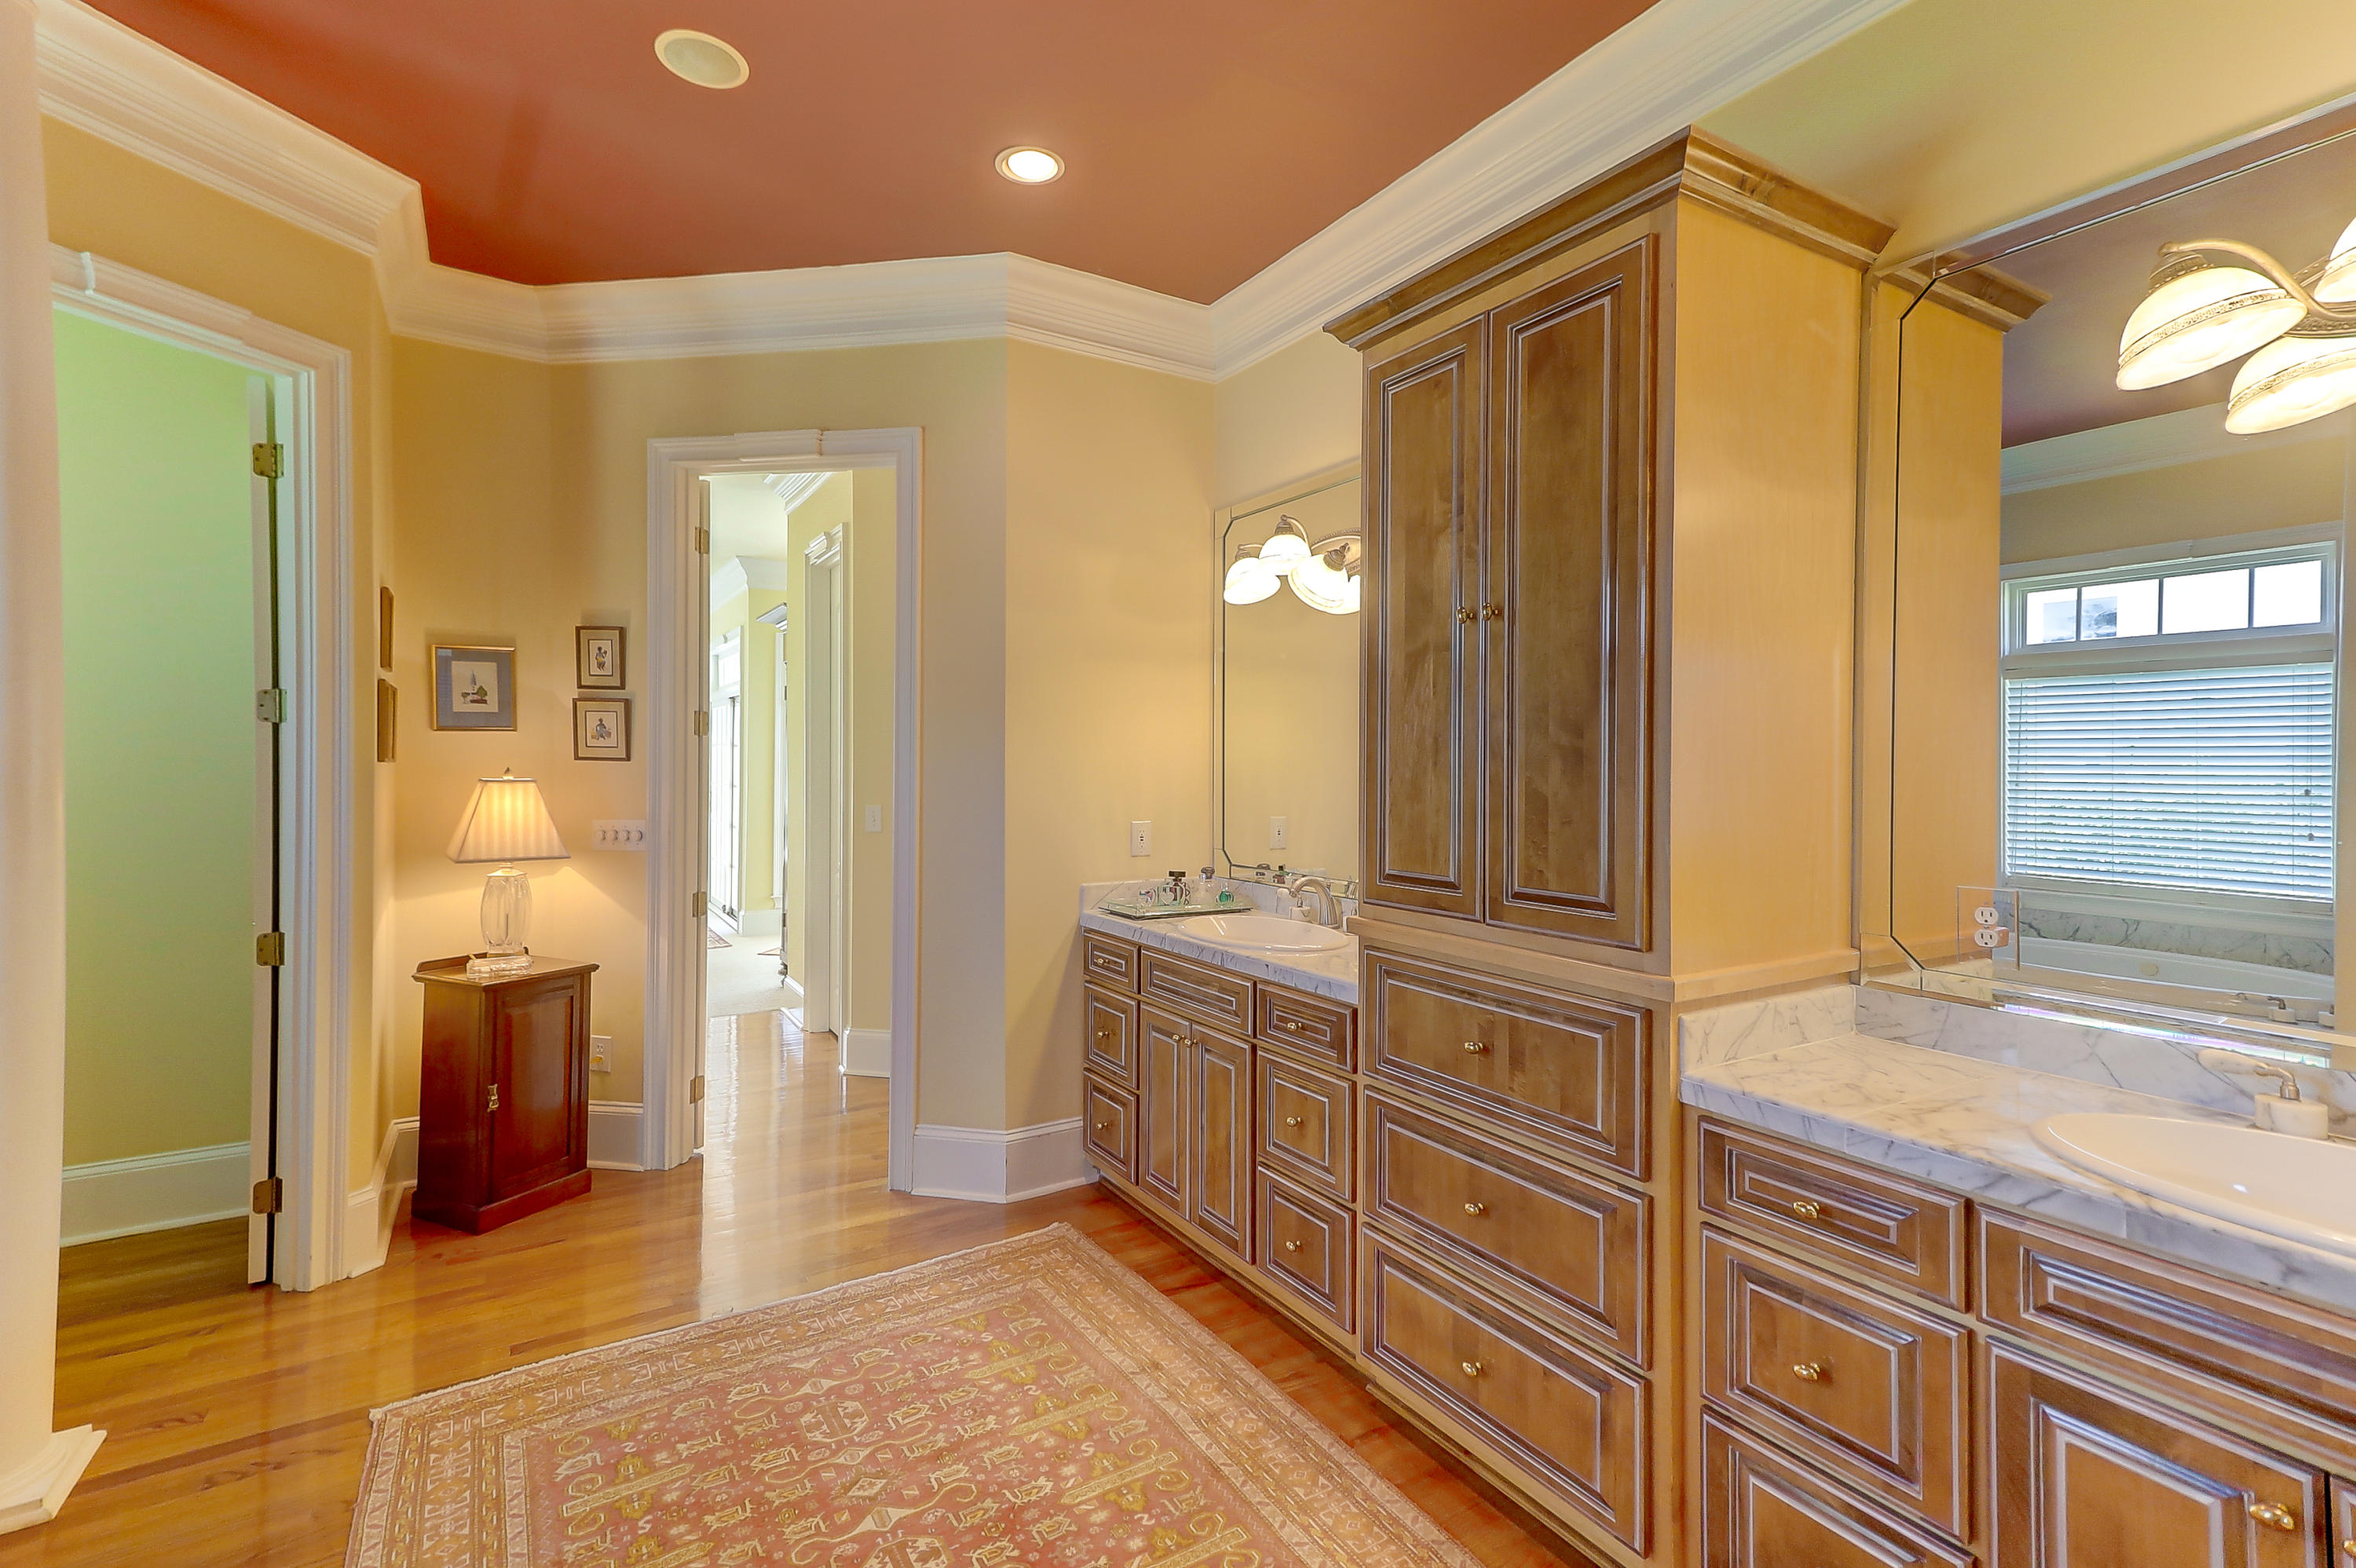 Dunes West Homes For Sale - 2019 Shell Ring, Mount Pleasant, SC - 14